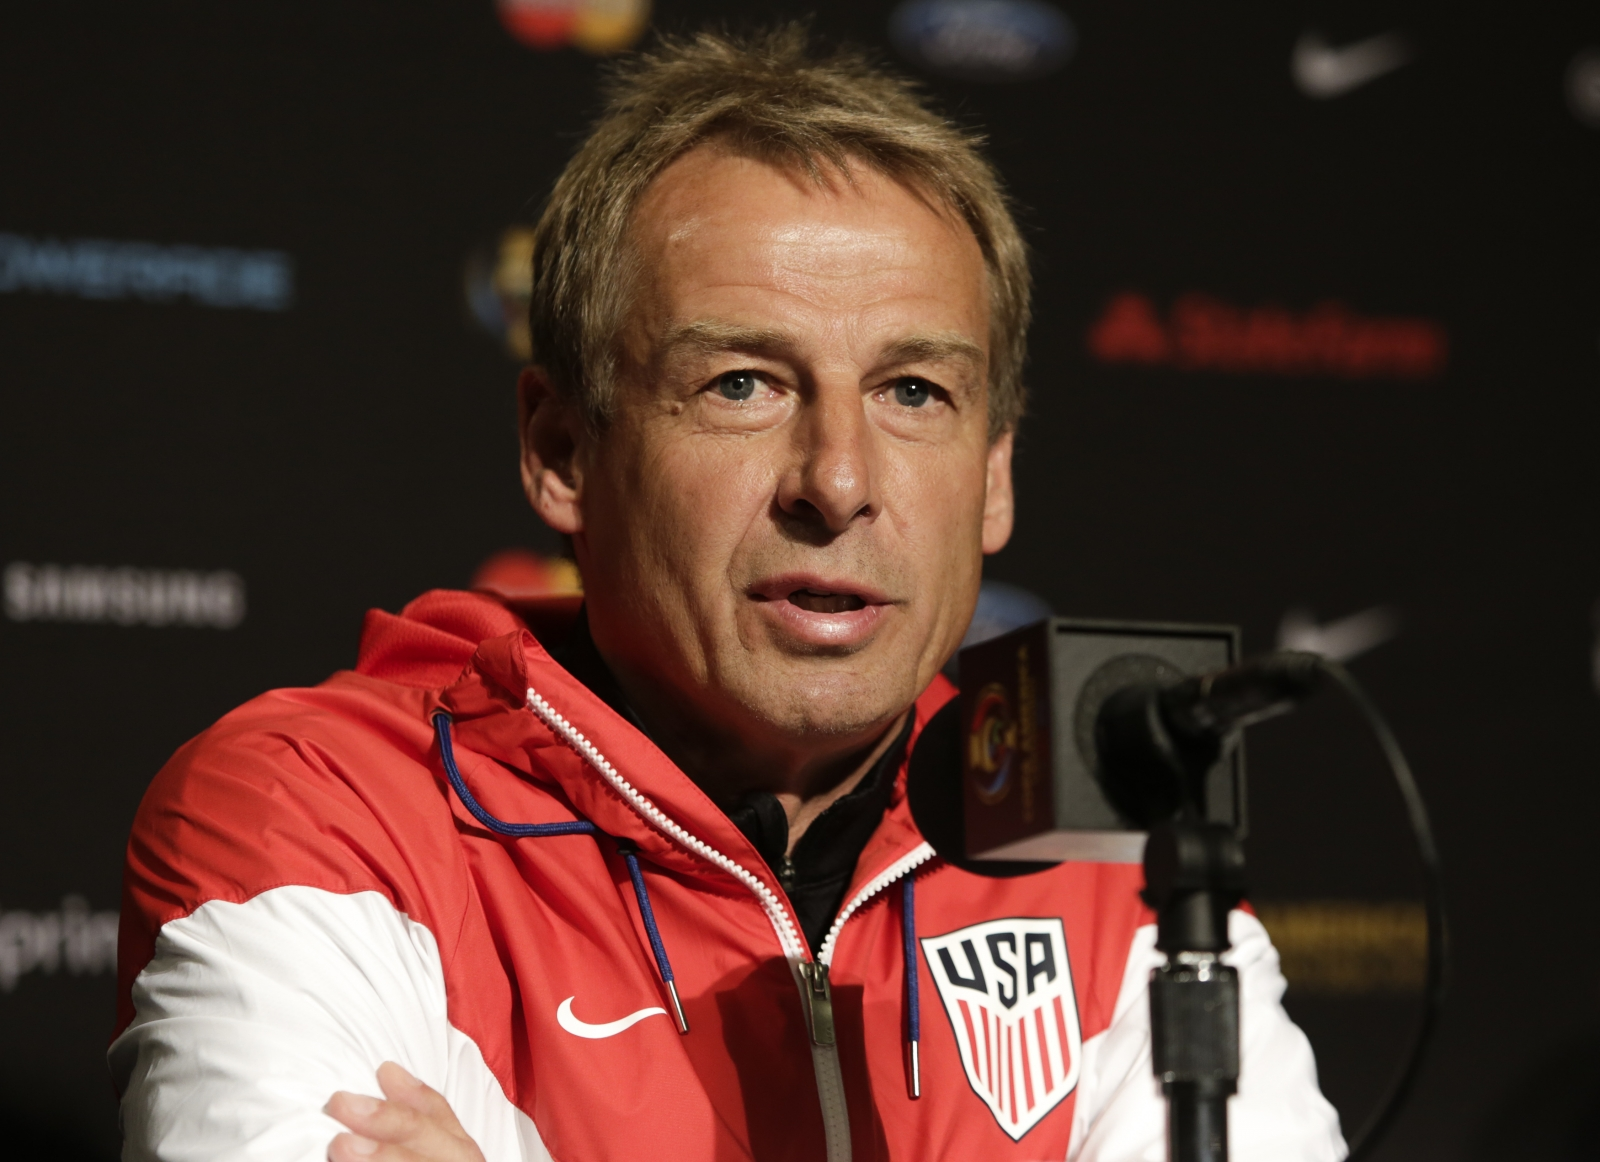 jurgen klinsmann - photo #18